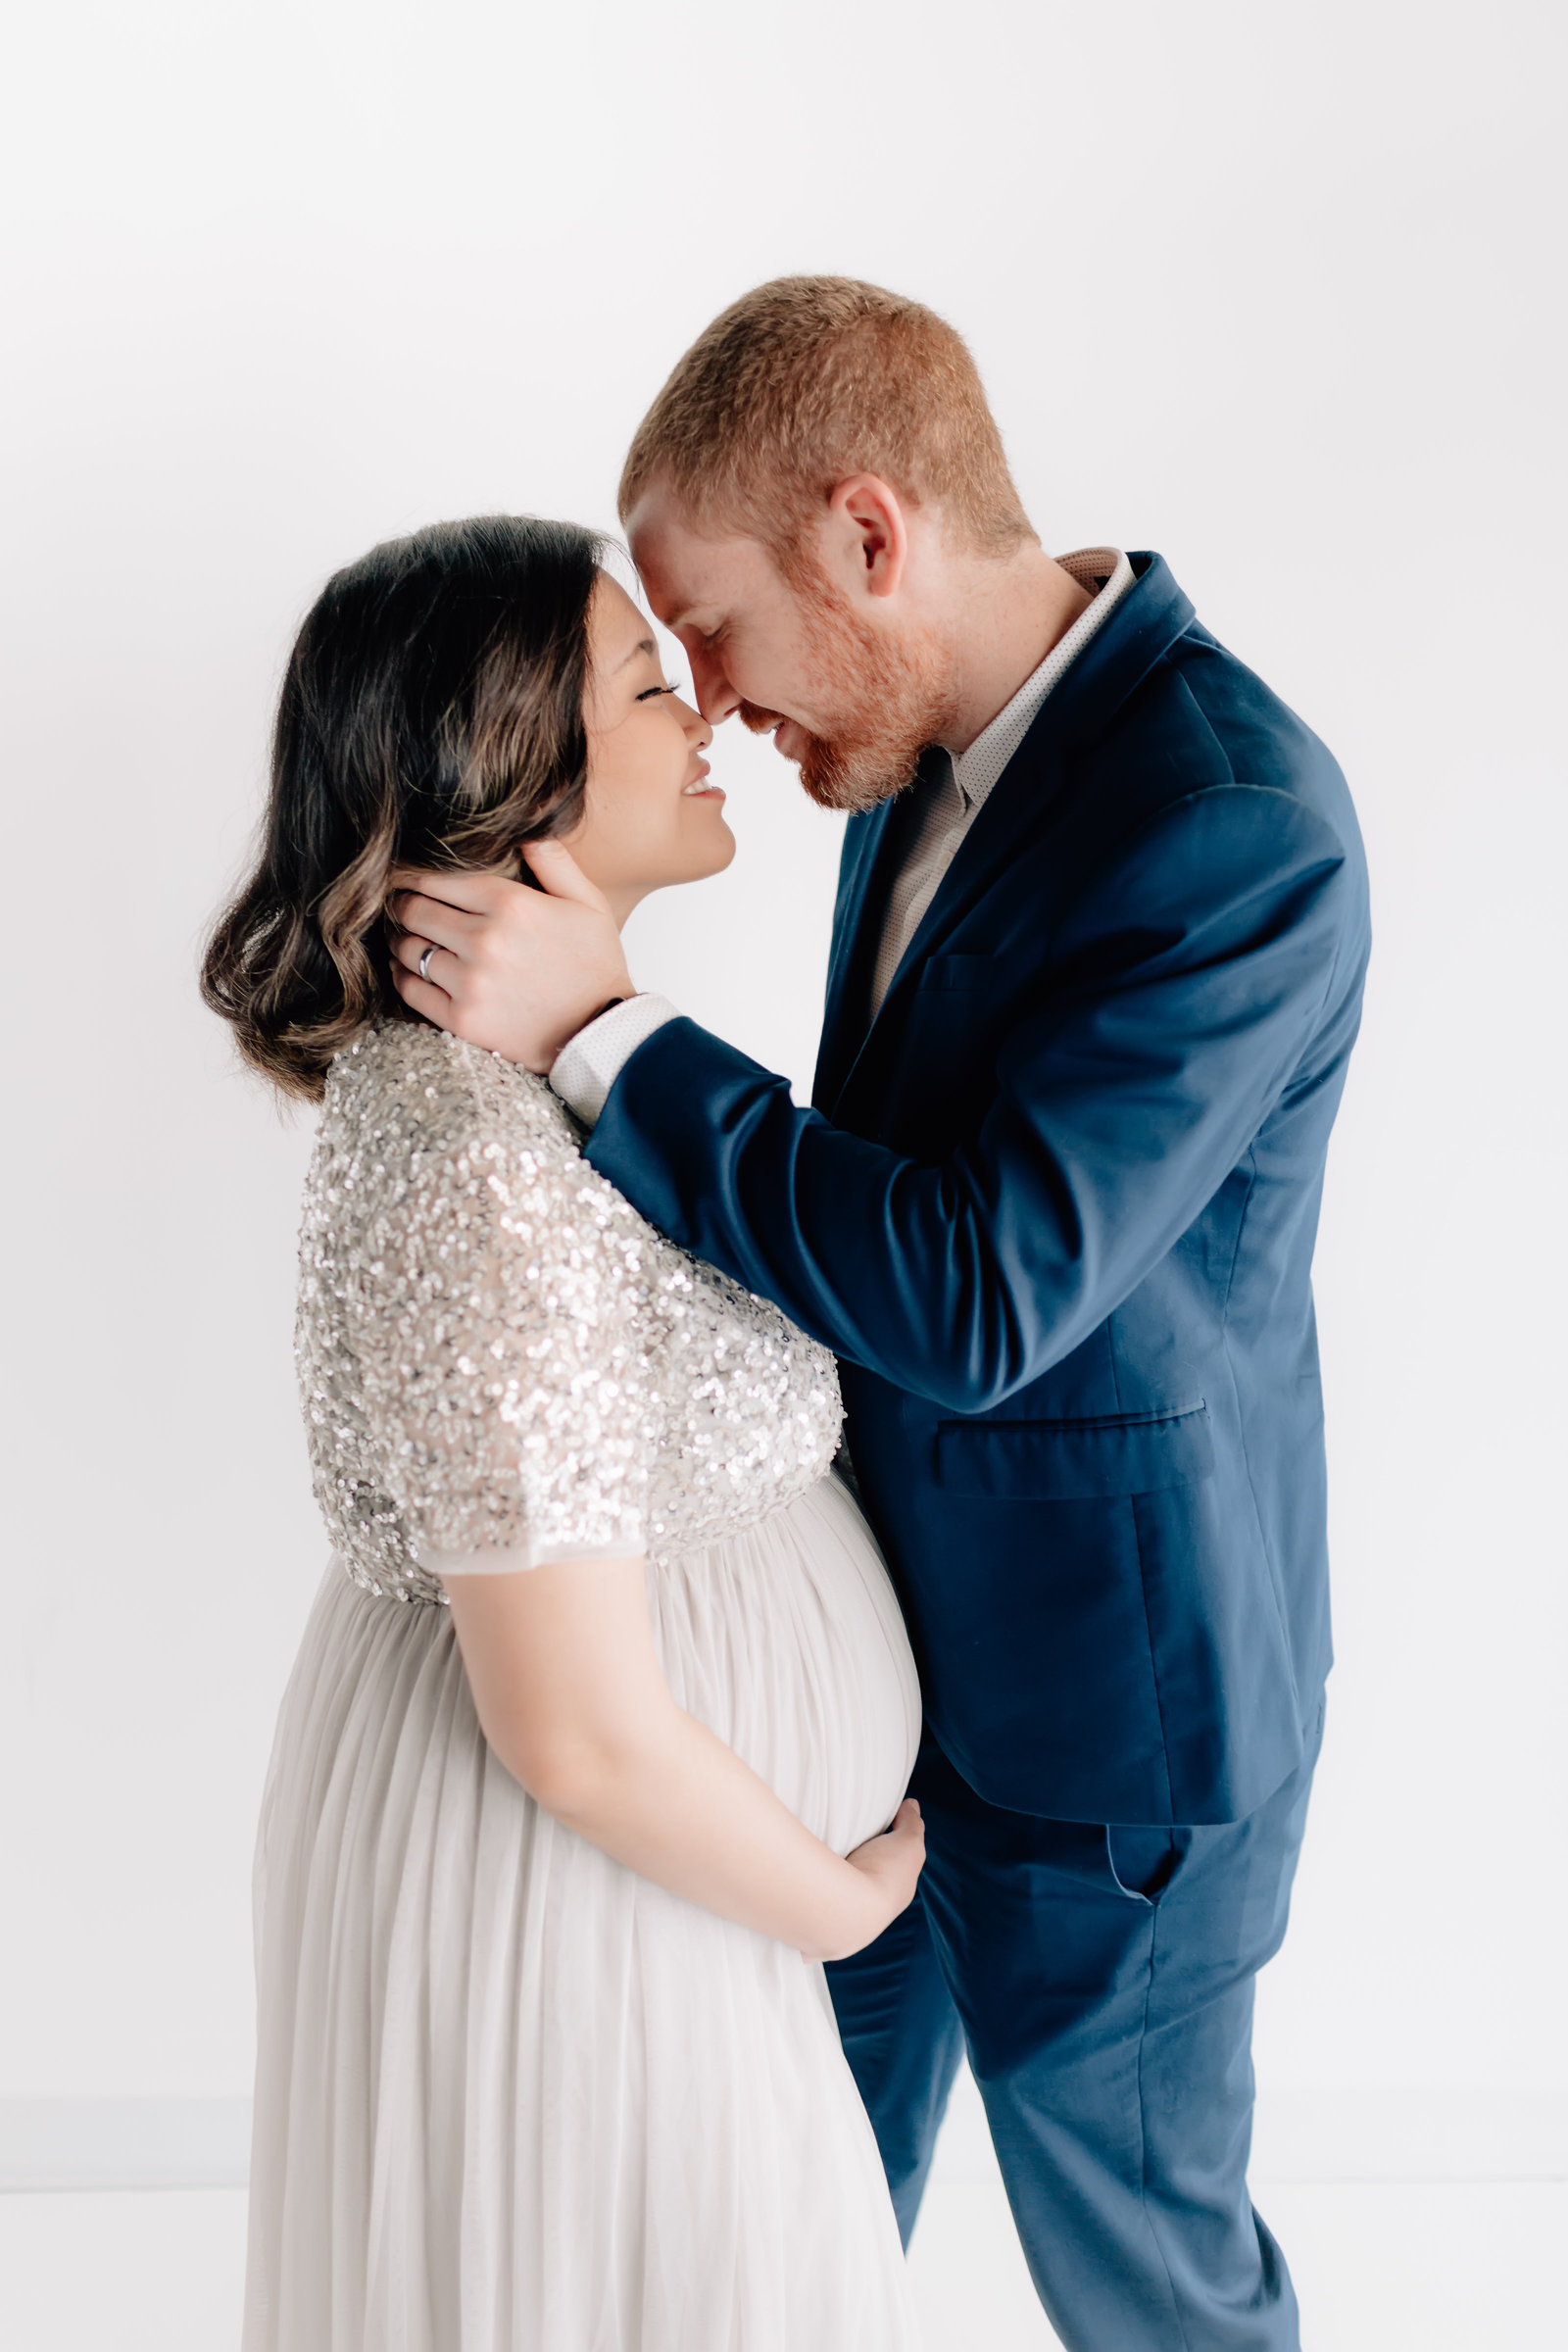 St_Louis_Maternity_Photographer_Kelly_Laramore_Photography23